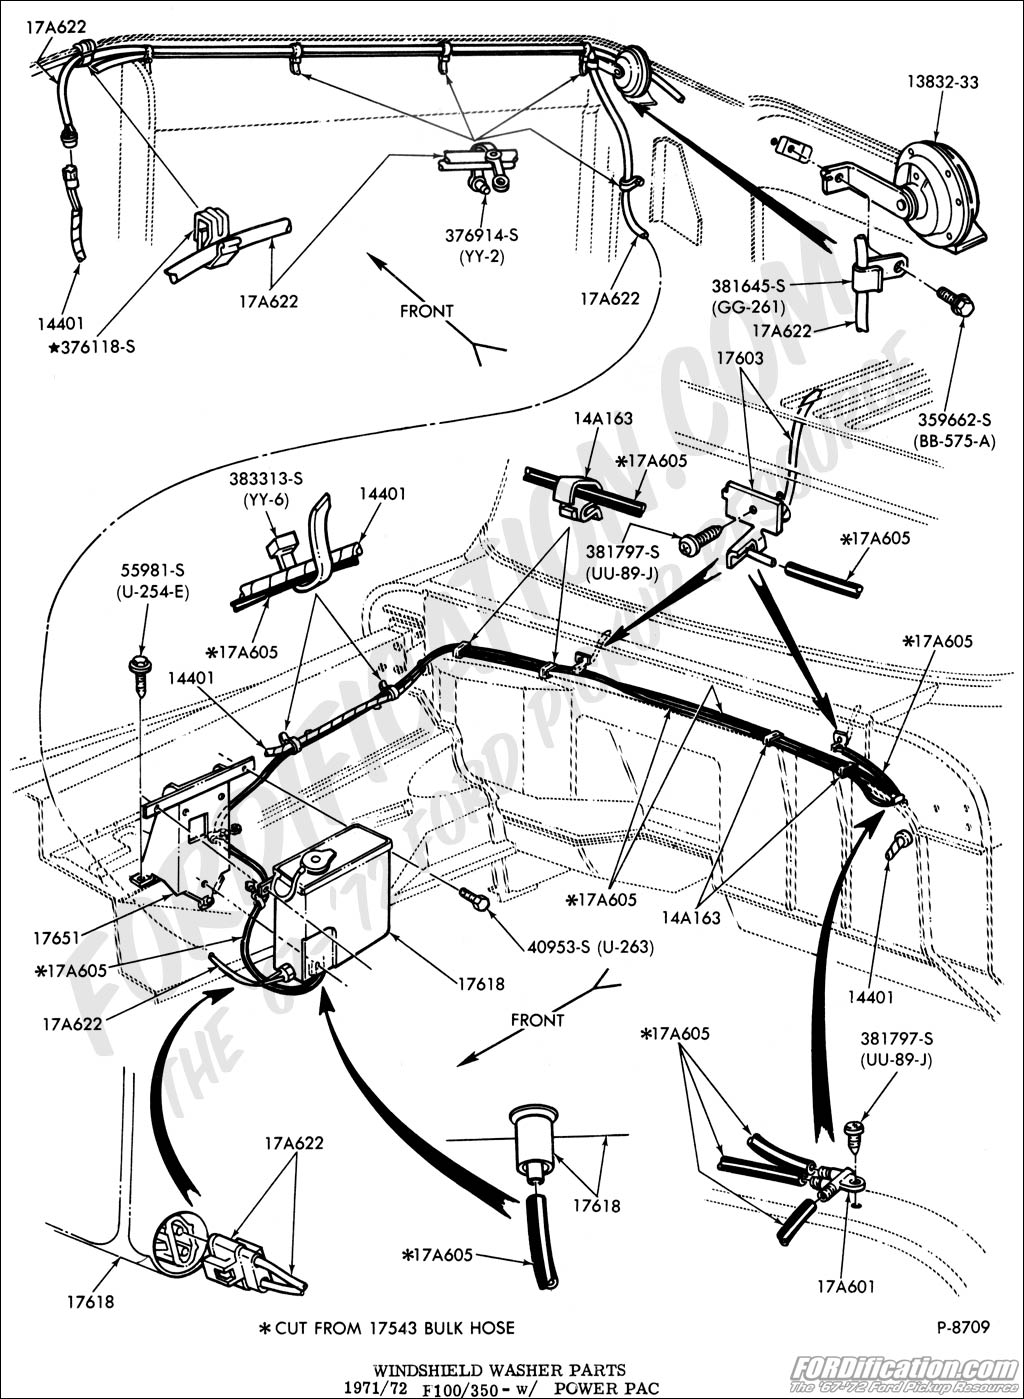 [DIAGRAM_3ER]  8E3EB49 Ford F 250 Wiring Diagram For 1965 | Wiring Library | 2000 Ford F 250 Wiring Harness |  | Wiring Library